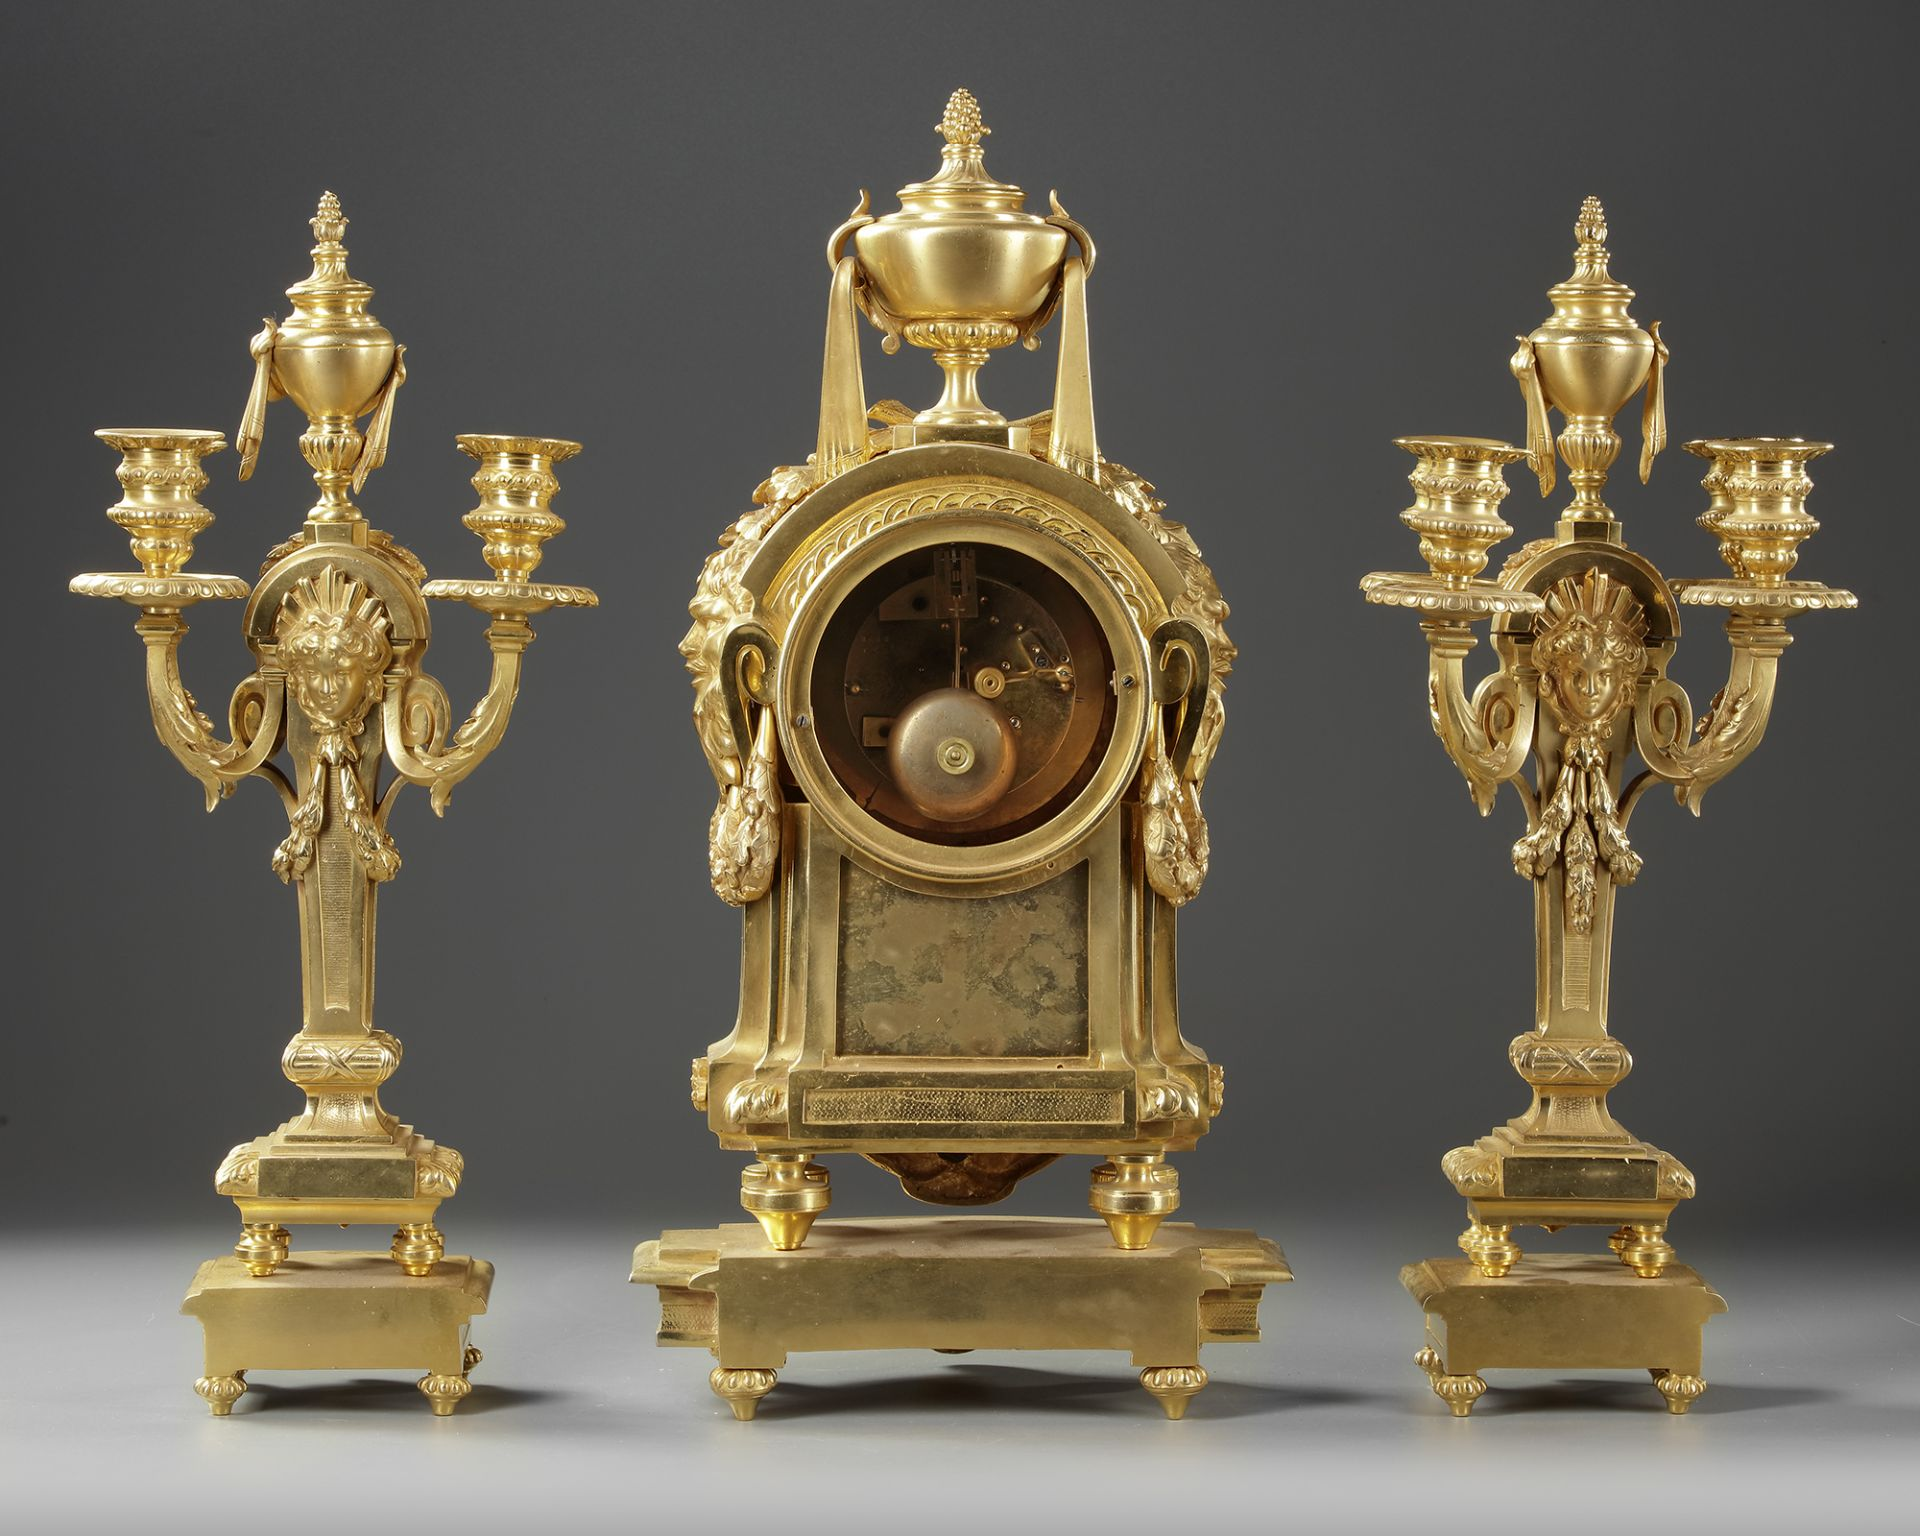 A FRENCH ORMOLU CLOCK SET, NAPOLEON III STYLE - Image 3 of 4